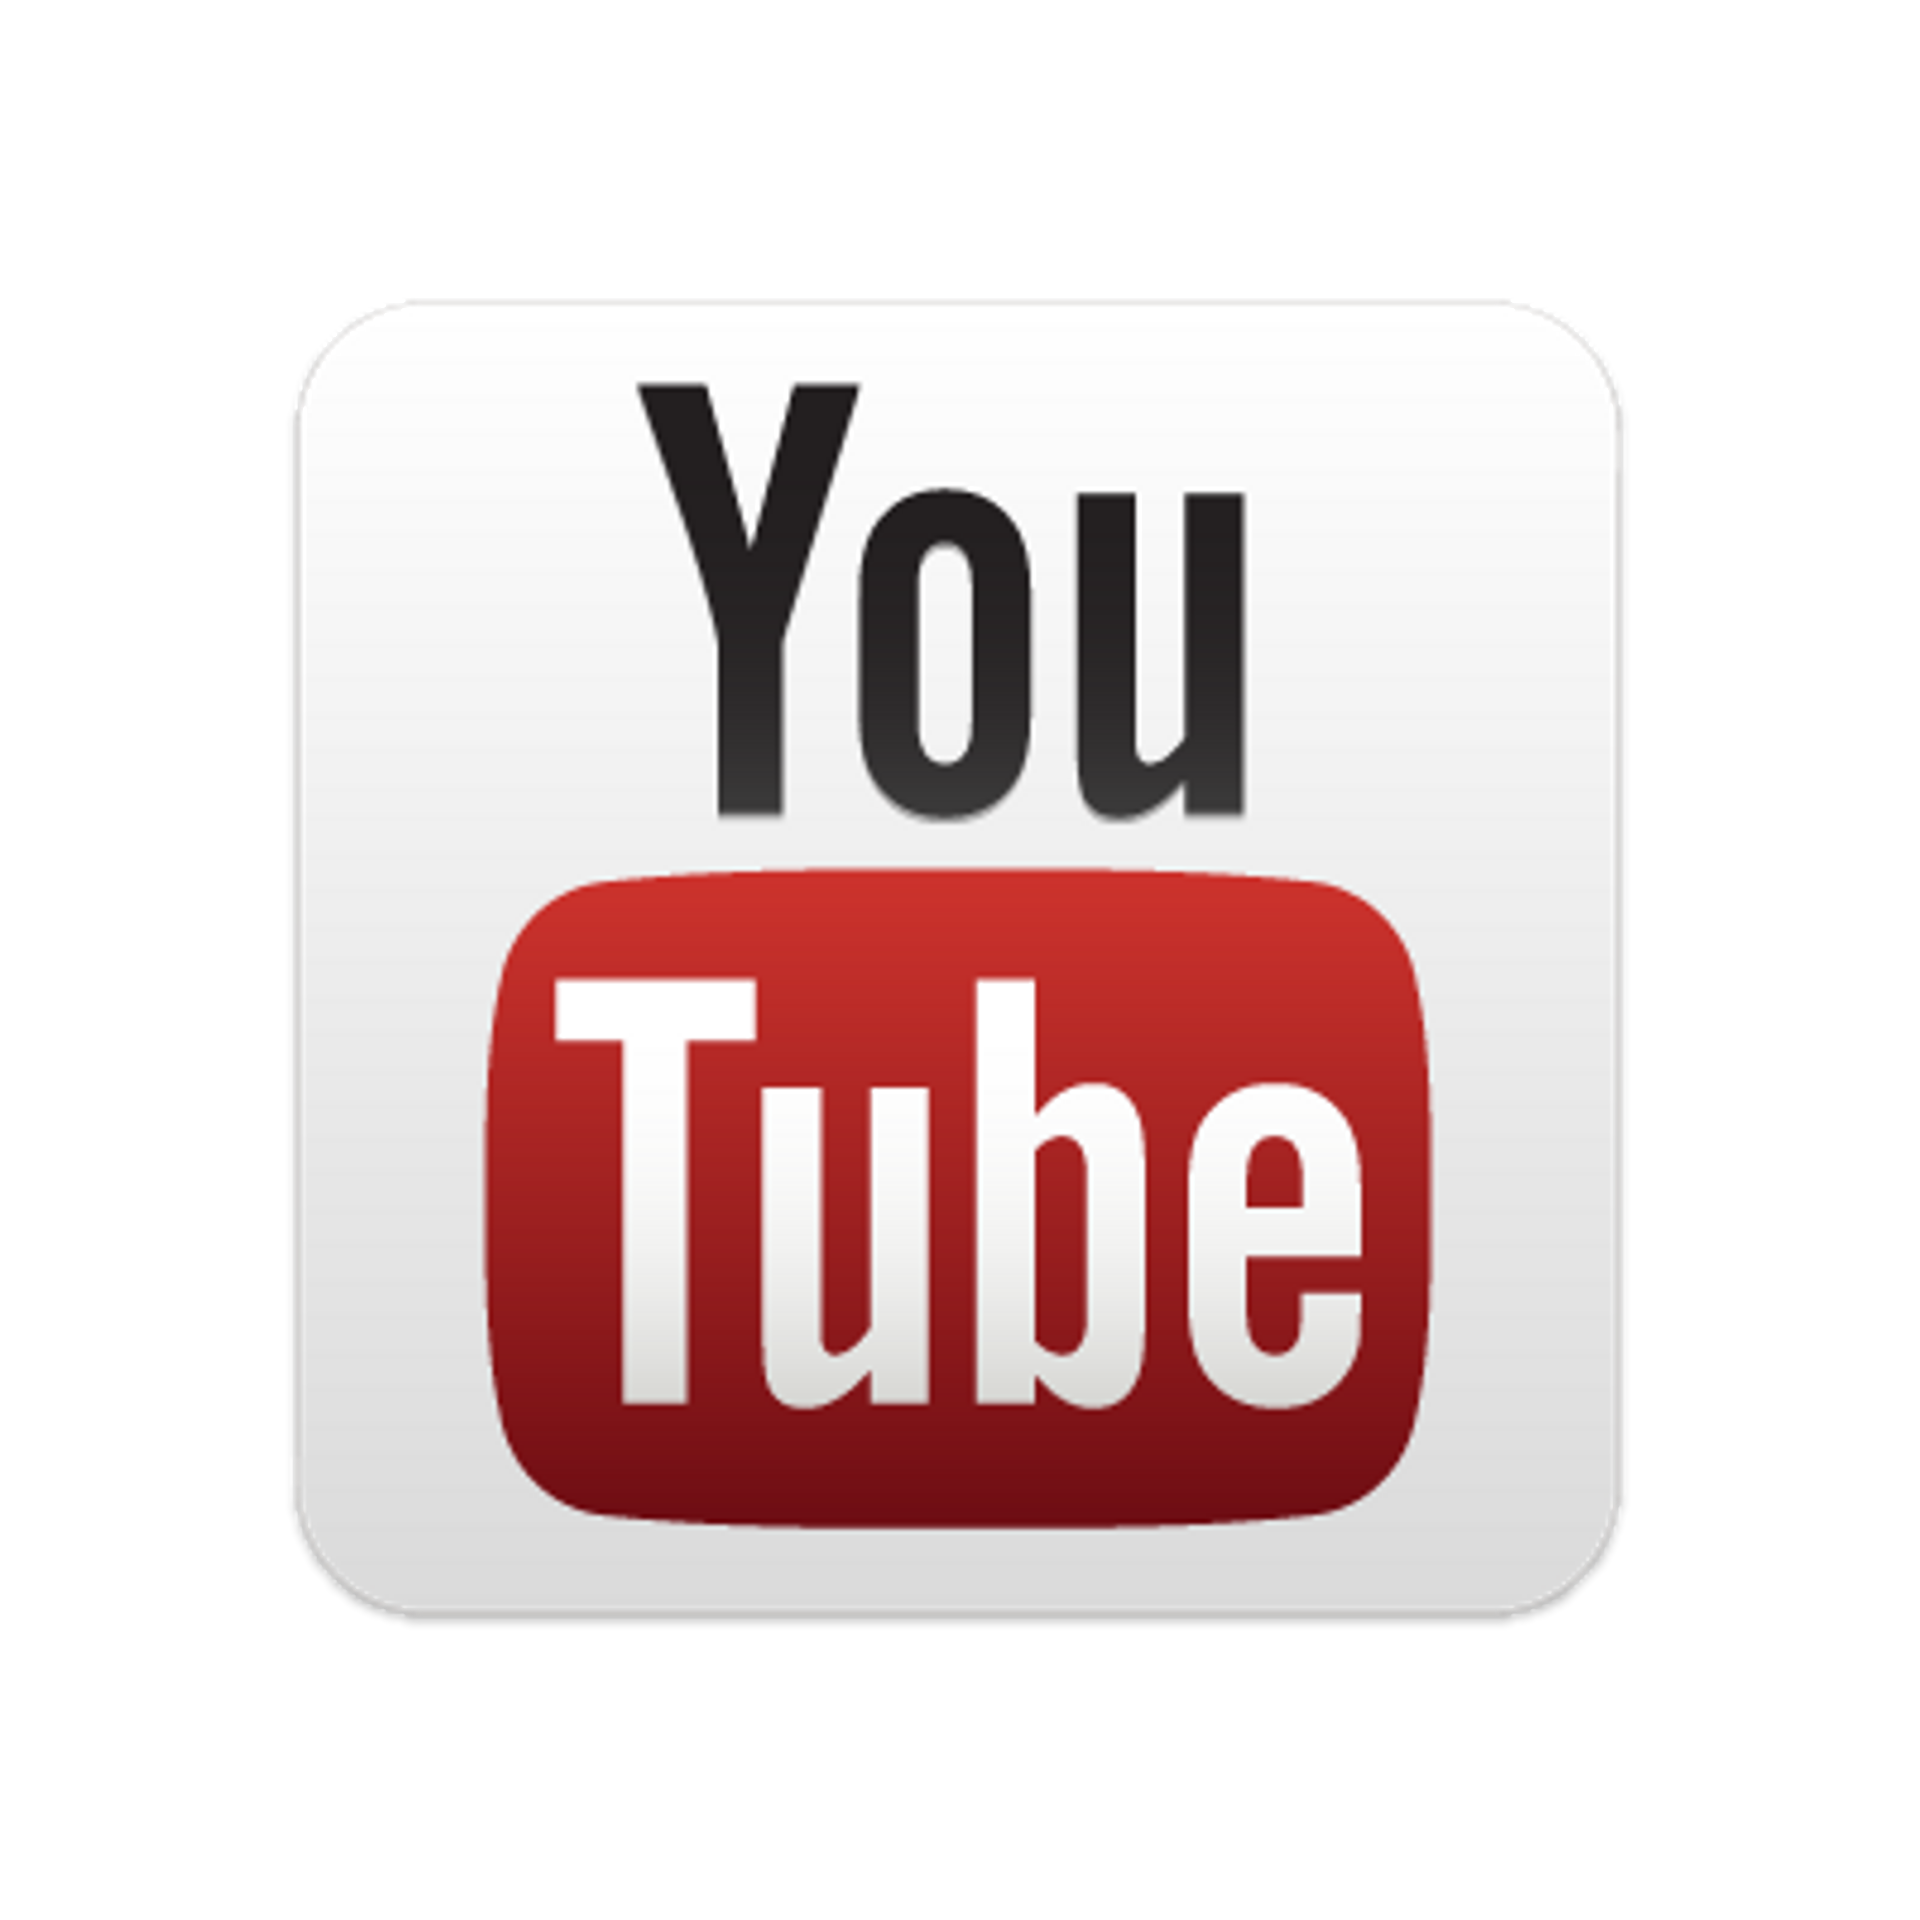 Logo youtube png. Computer icons download transprent